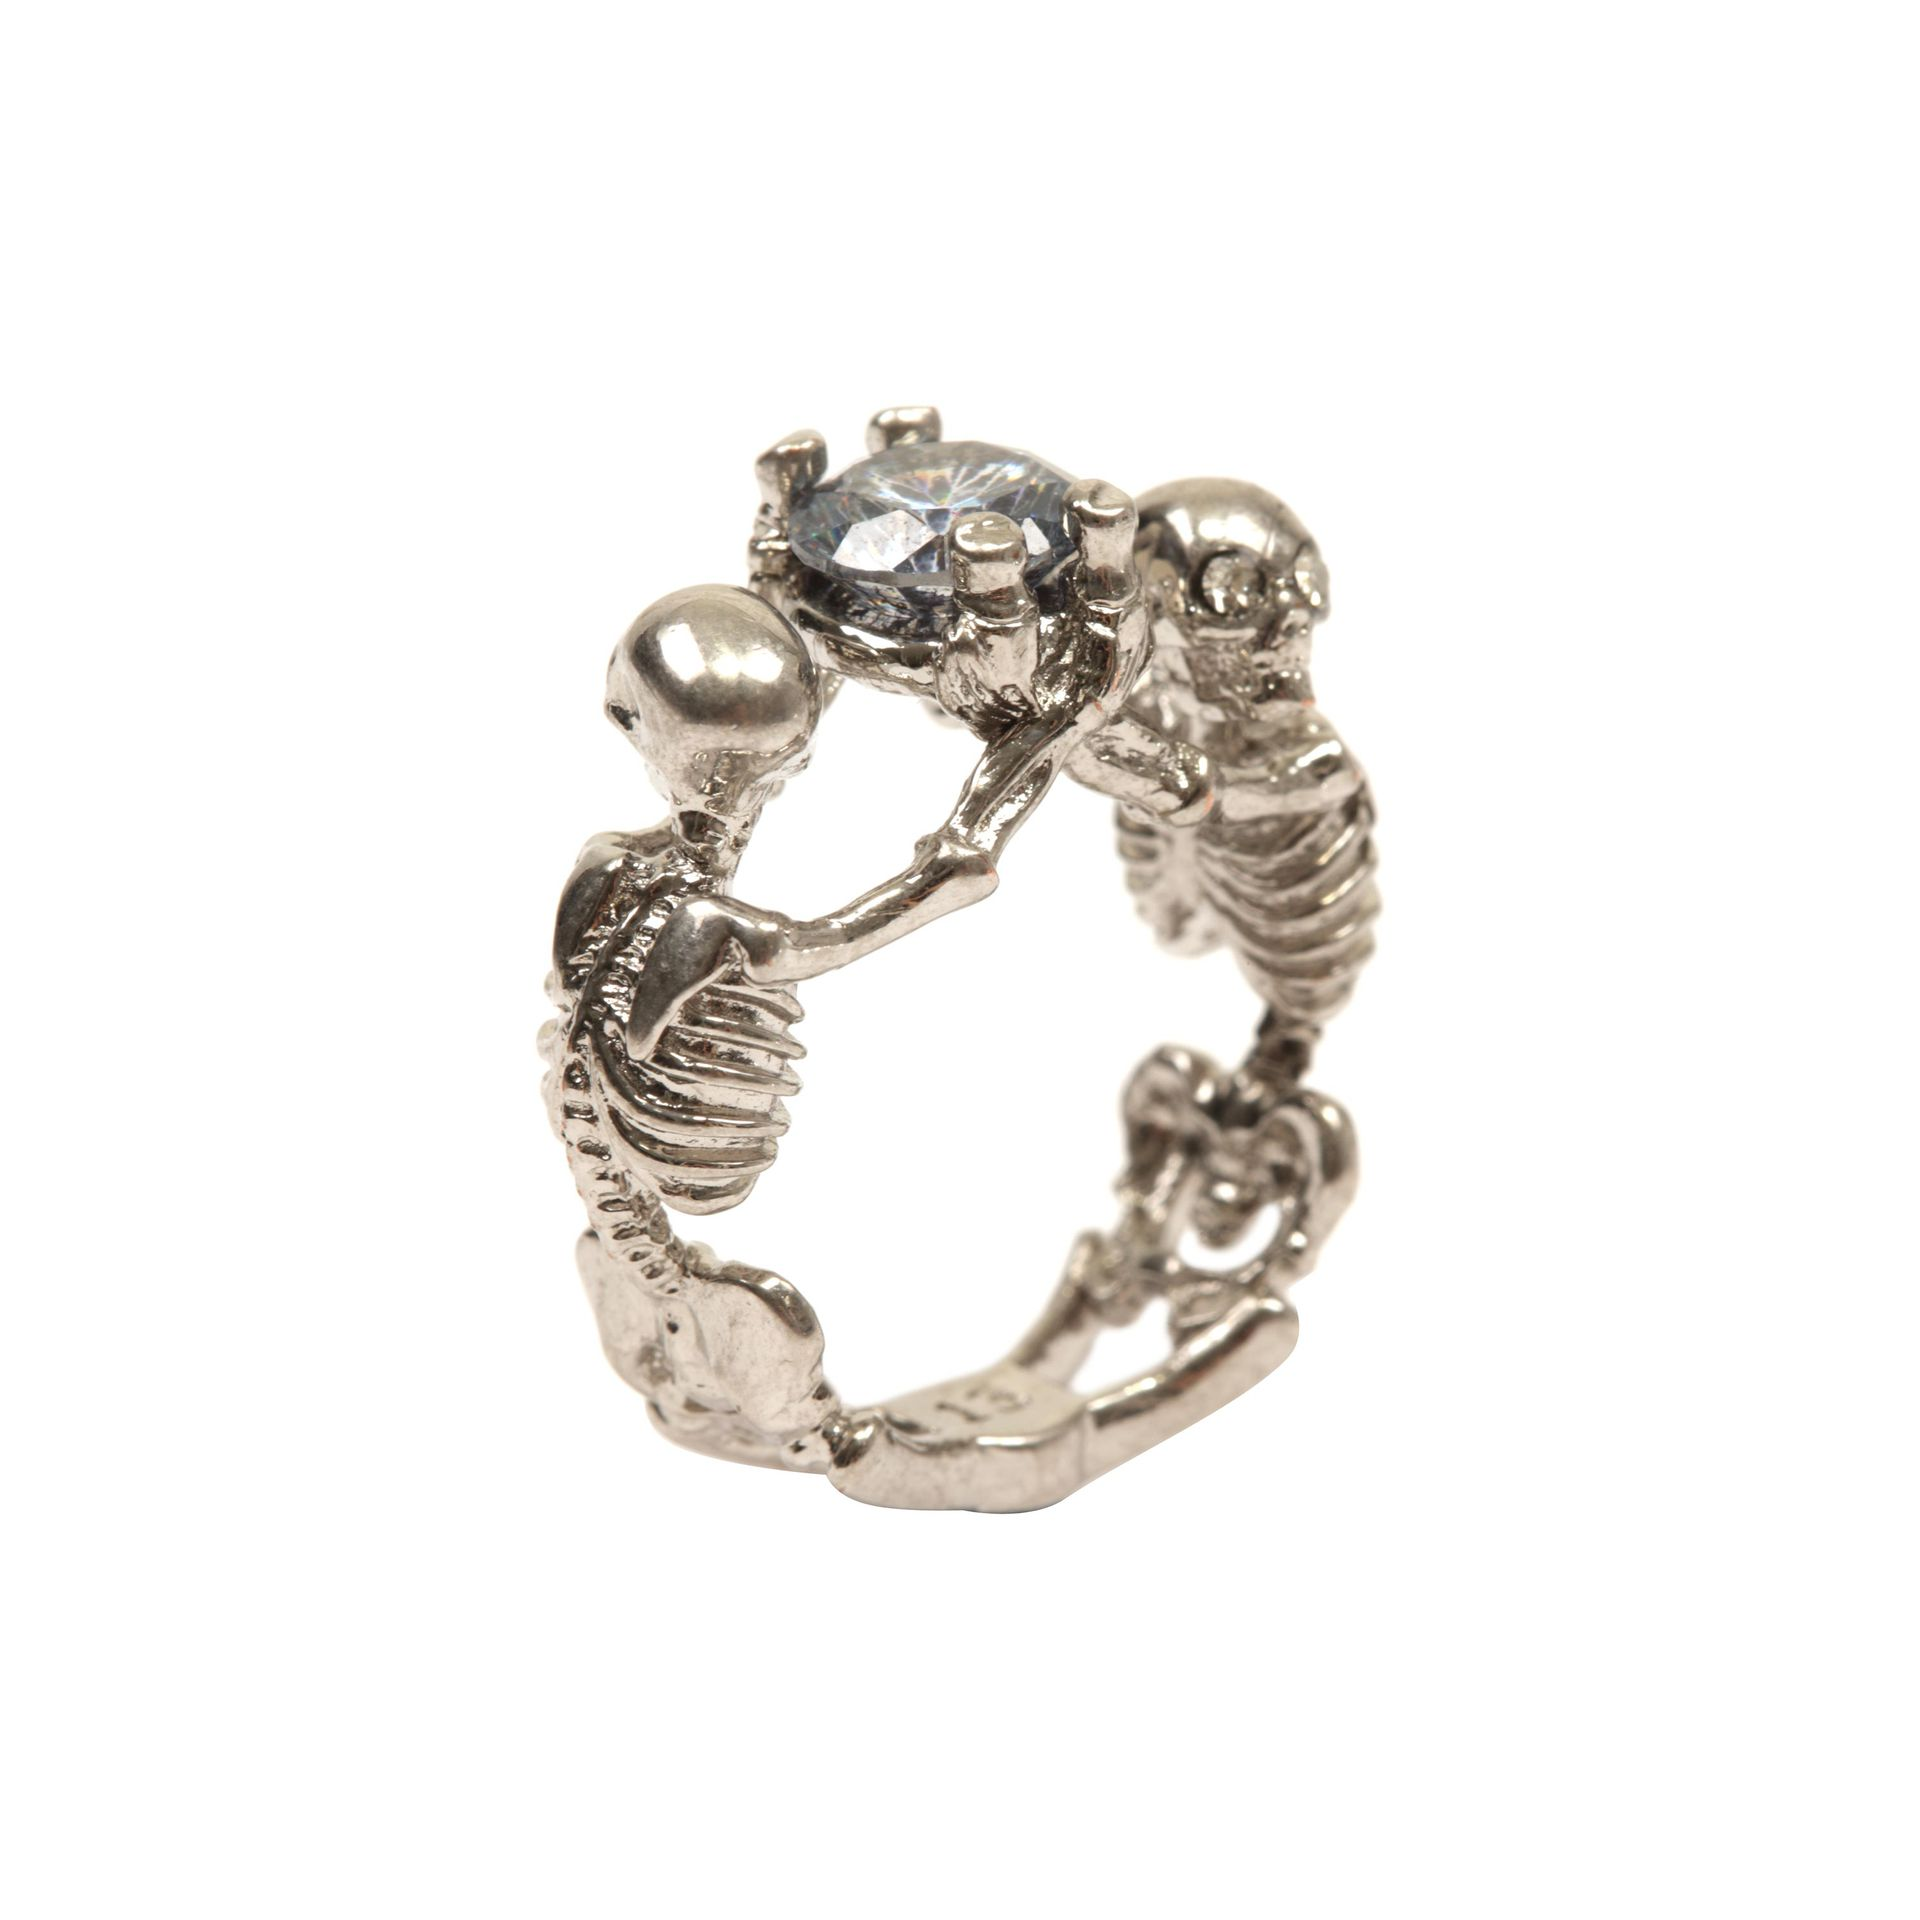 wax memento seal products rings suegray jewelry mori skeleton ring